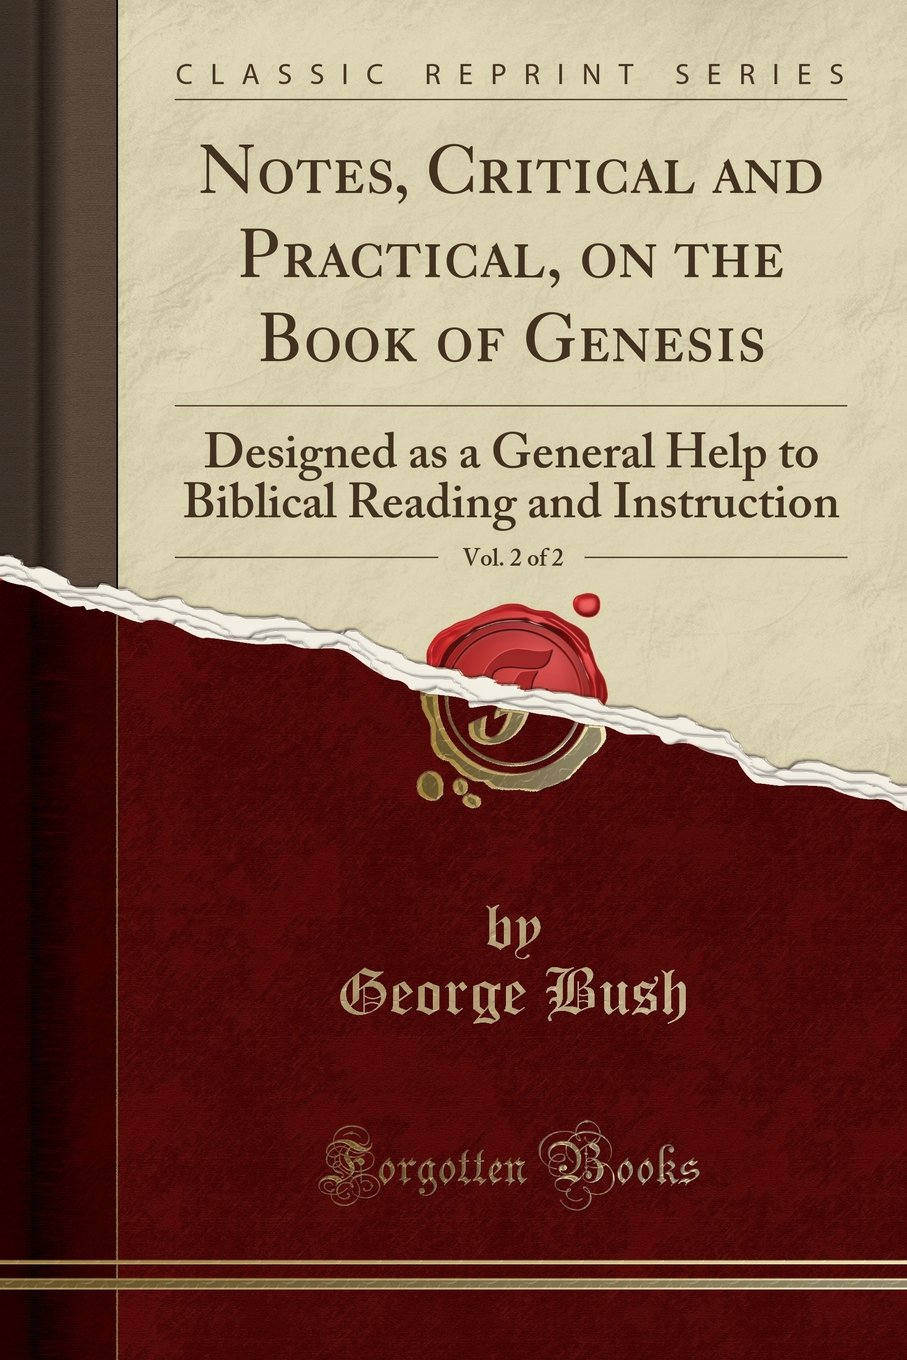 Notes, Critical and Practical, on the Book of Genesis, Vol. 2 of 2: Designed as a General Help to Biblical Reading and Instruction (Classic Reprint) pdf